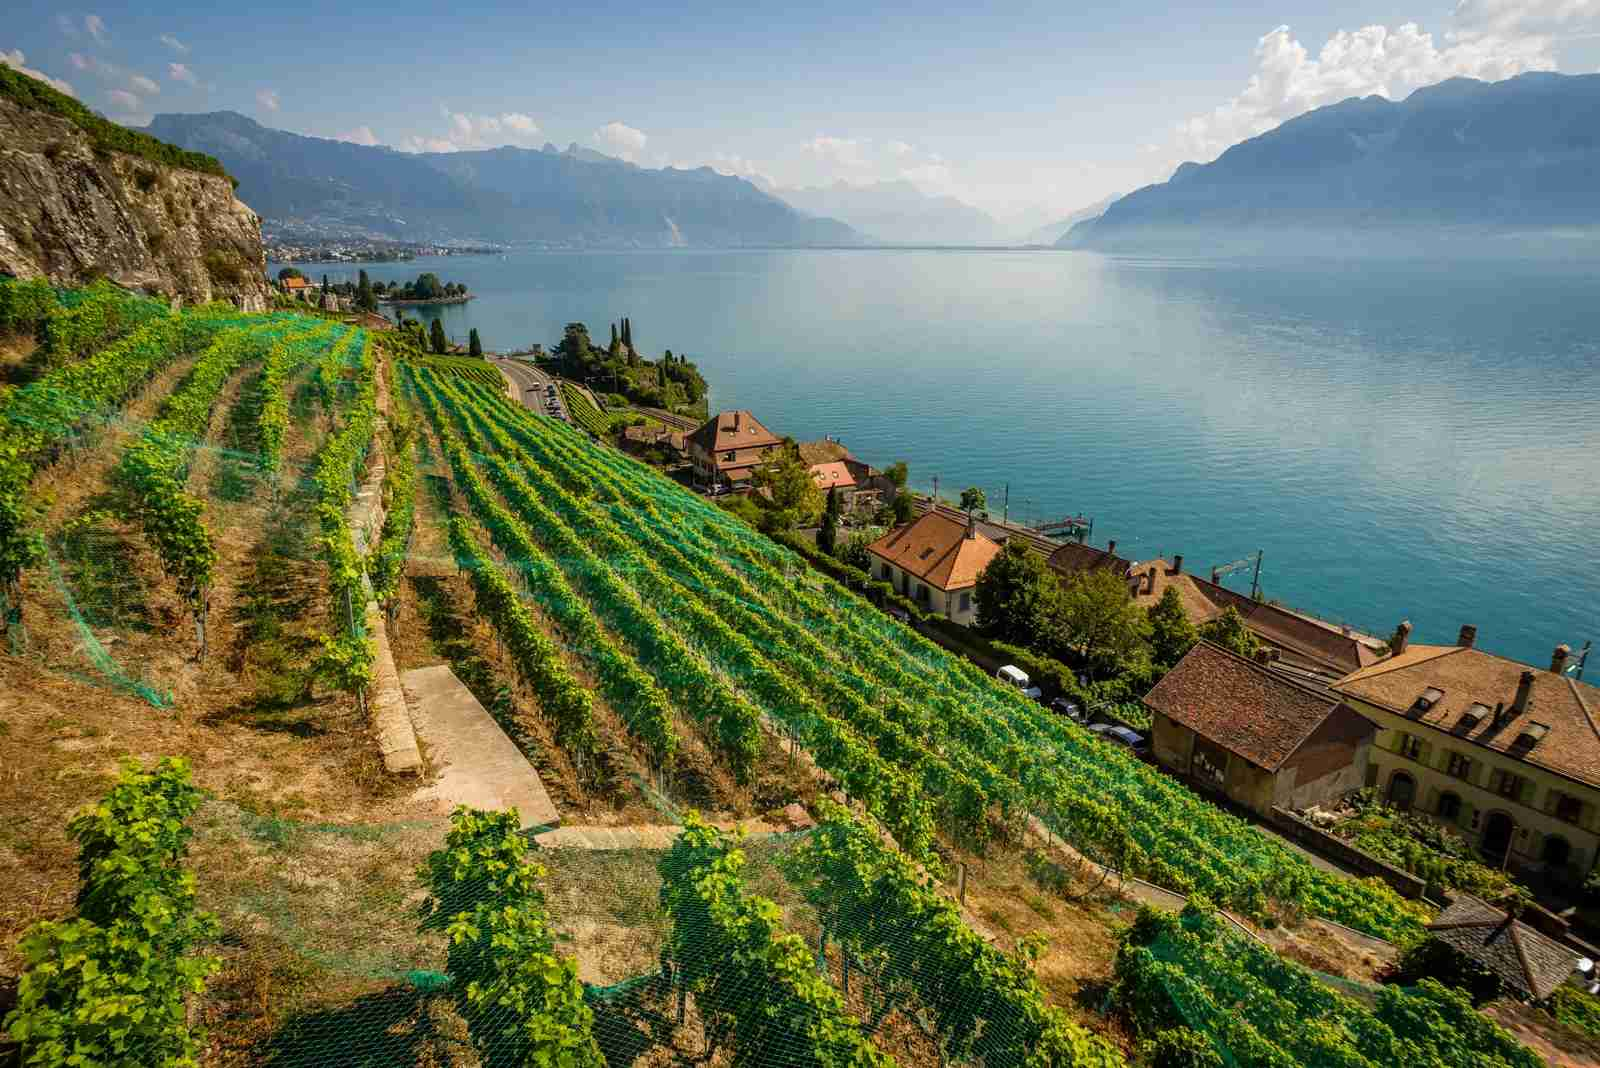 Overlooking the vineyards on the coast of Lake Geneva. (Photo by cdbrphotography / Getty Images